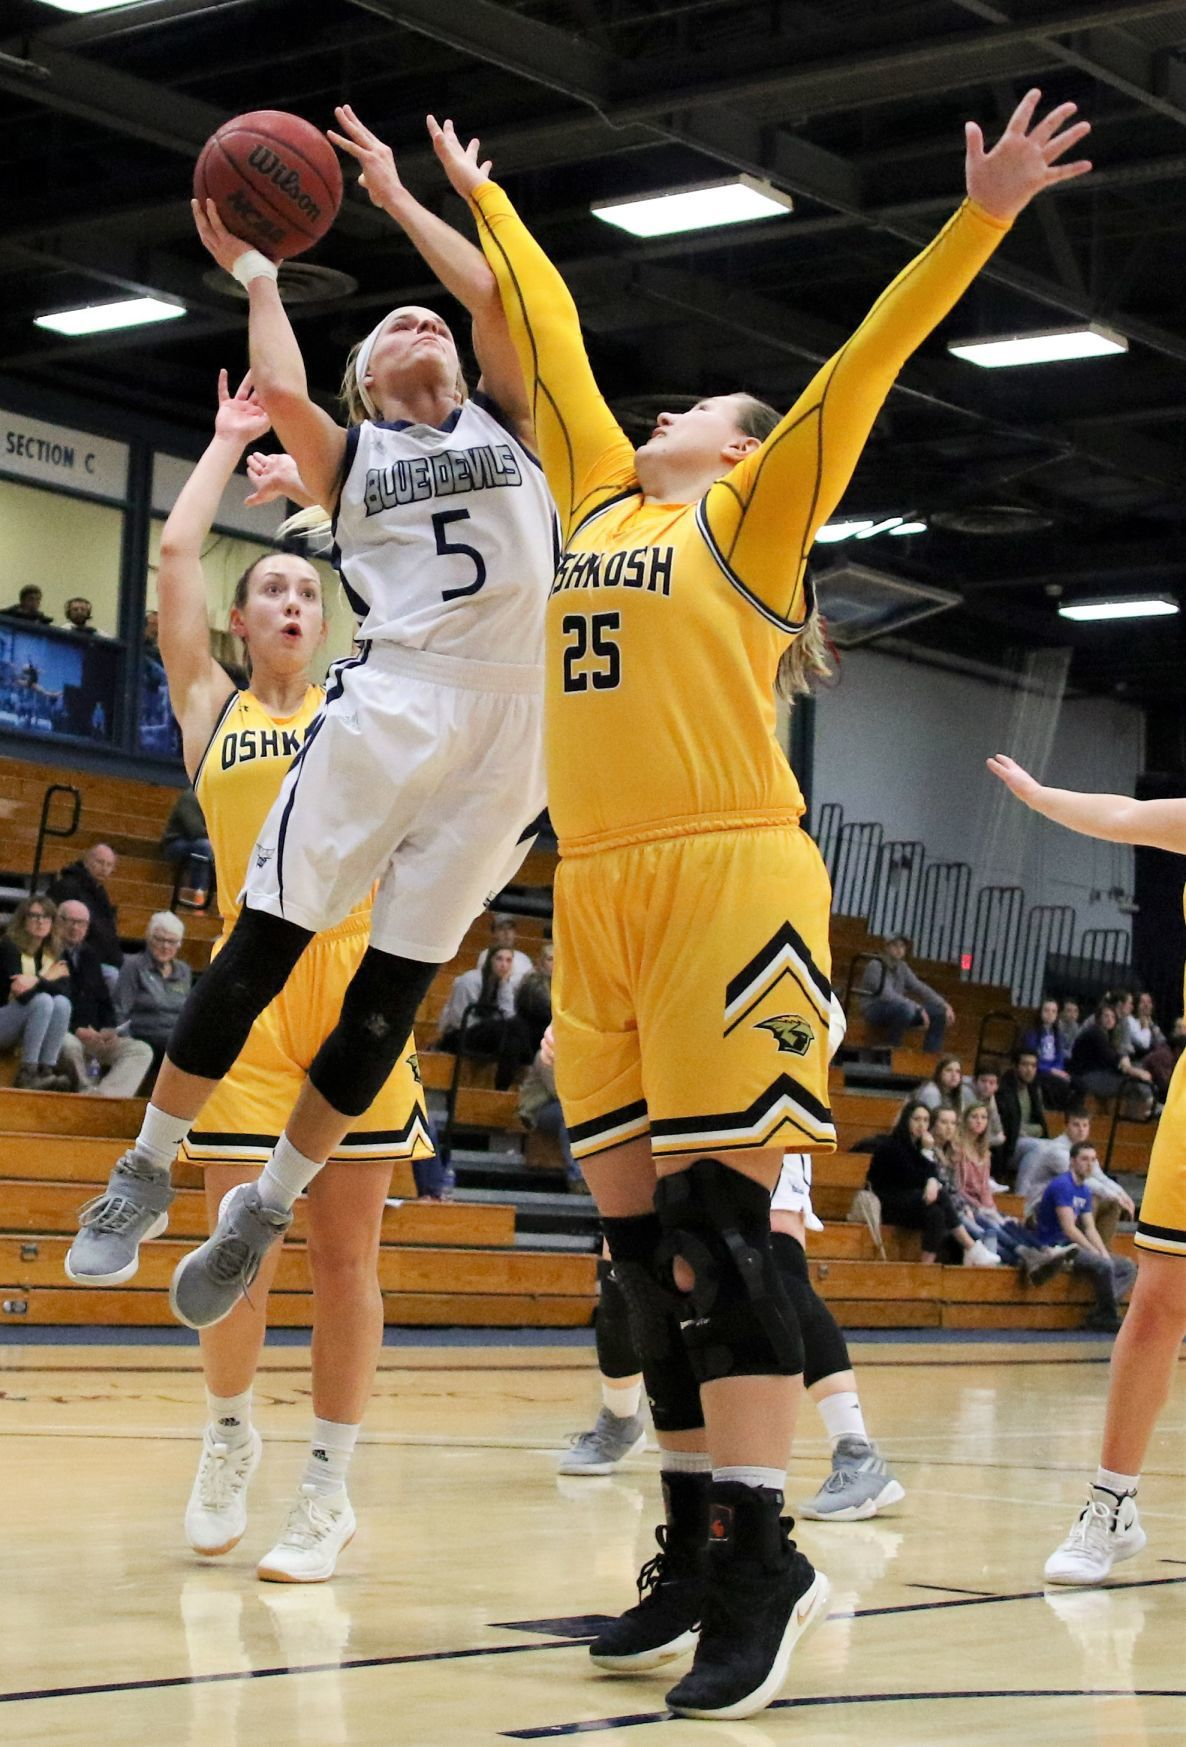 020219_CON_BRANAL_WBB_OSHKOSH_AT_STOUT-11